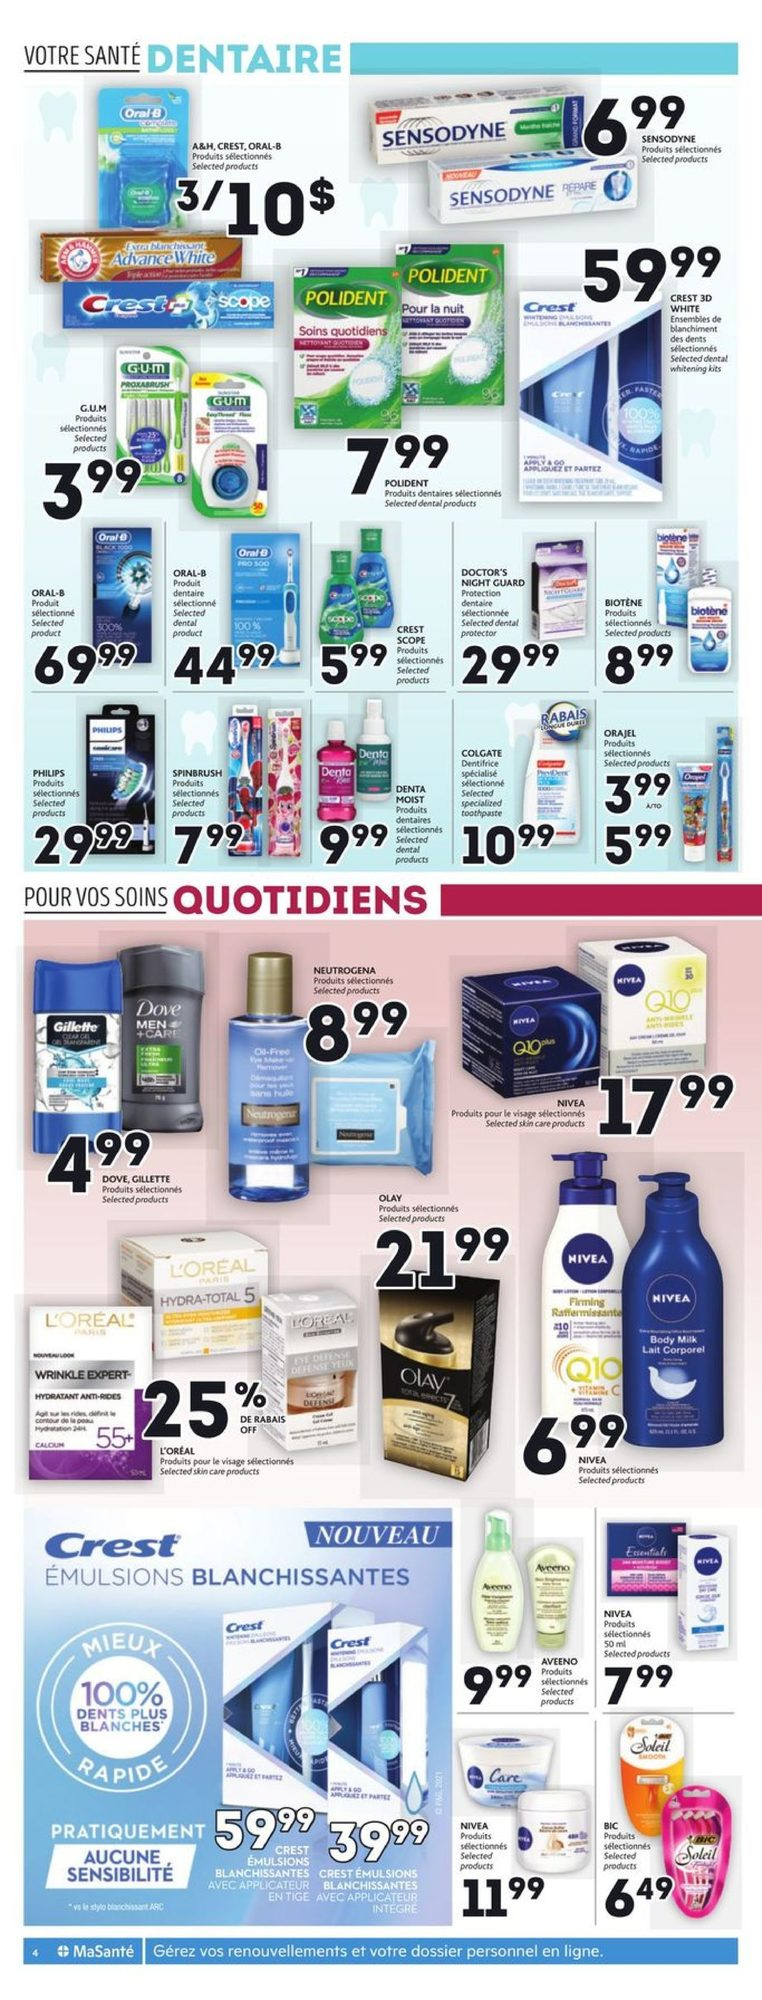 Brunet - Weekly Flyer Specials - Page 4